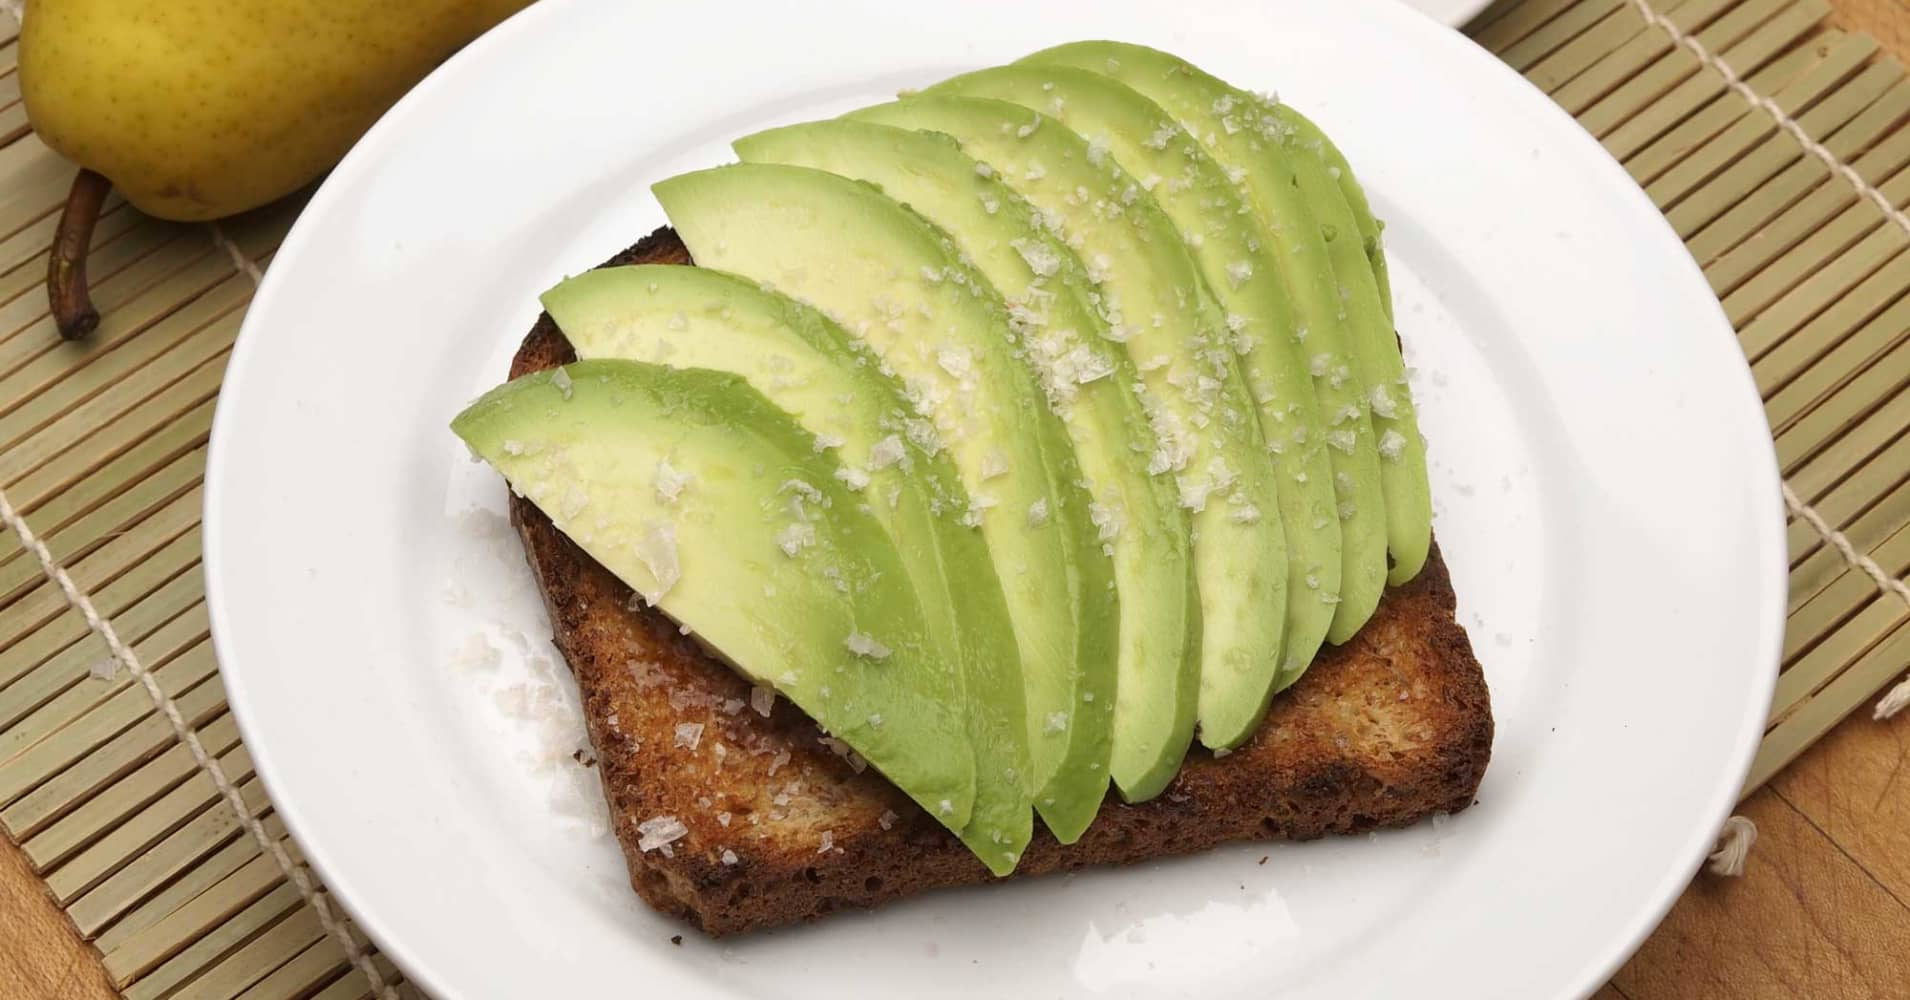 how to stop avocados from ripening